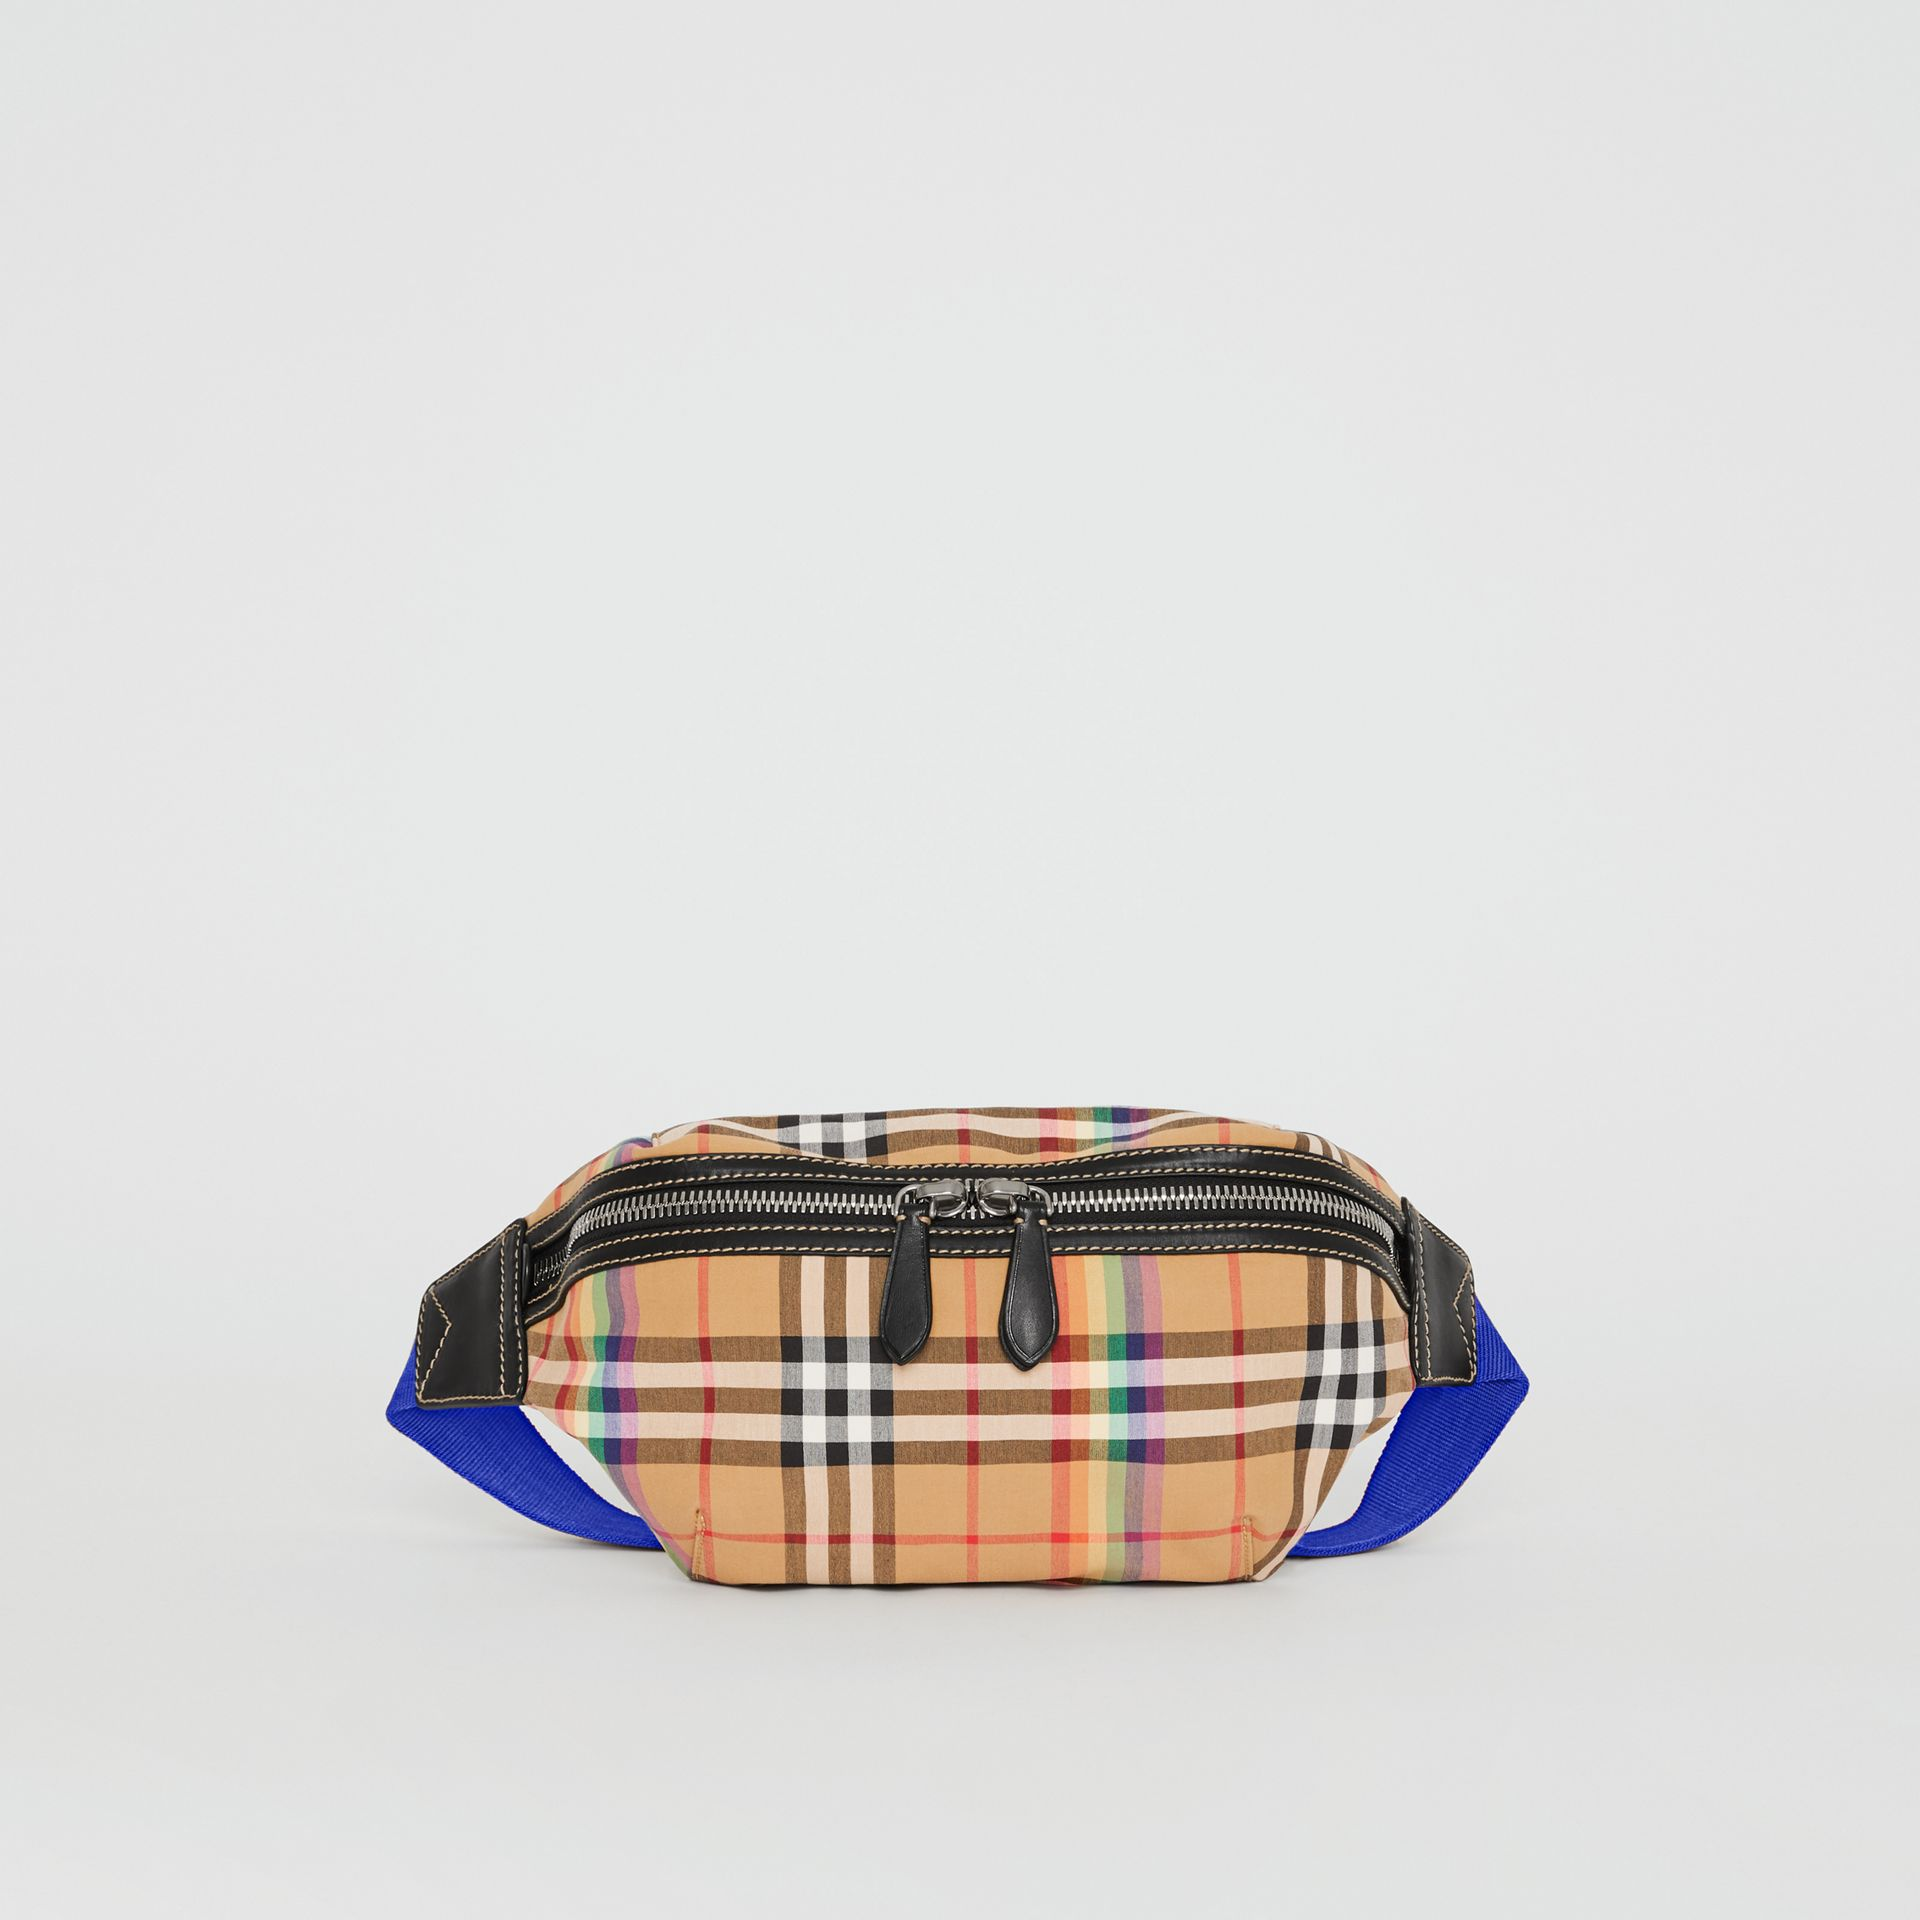 Medium Rainbow Vintage Check Bum Bag in Antique Yellow | Burberry United States - gallery image 3